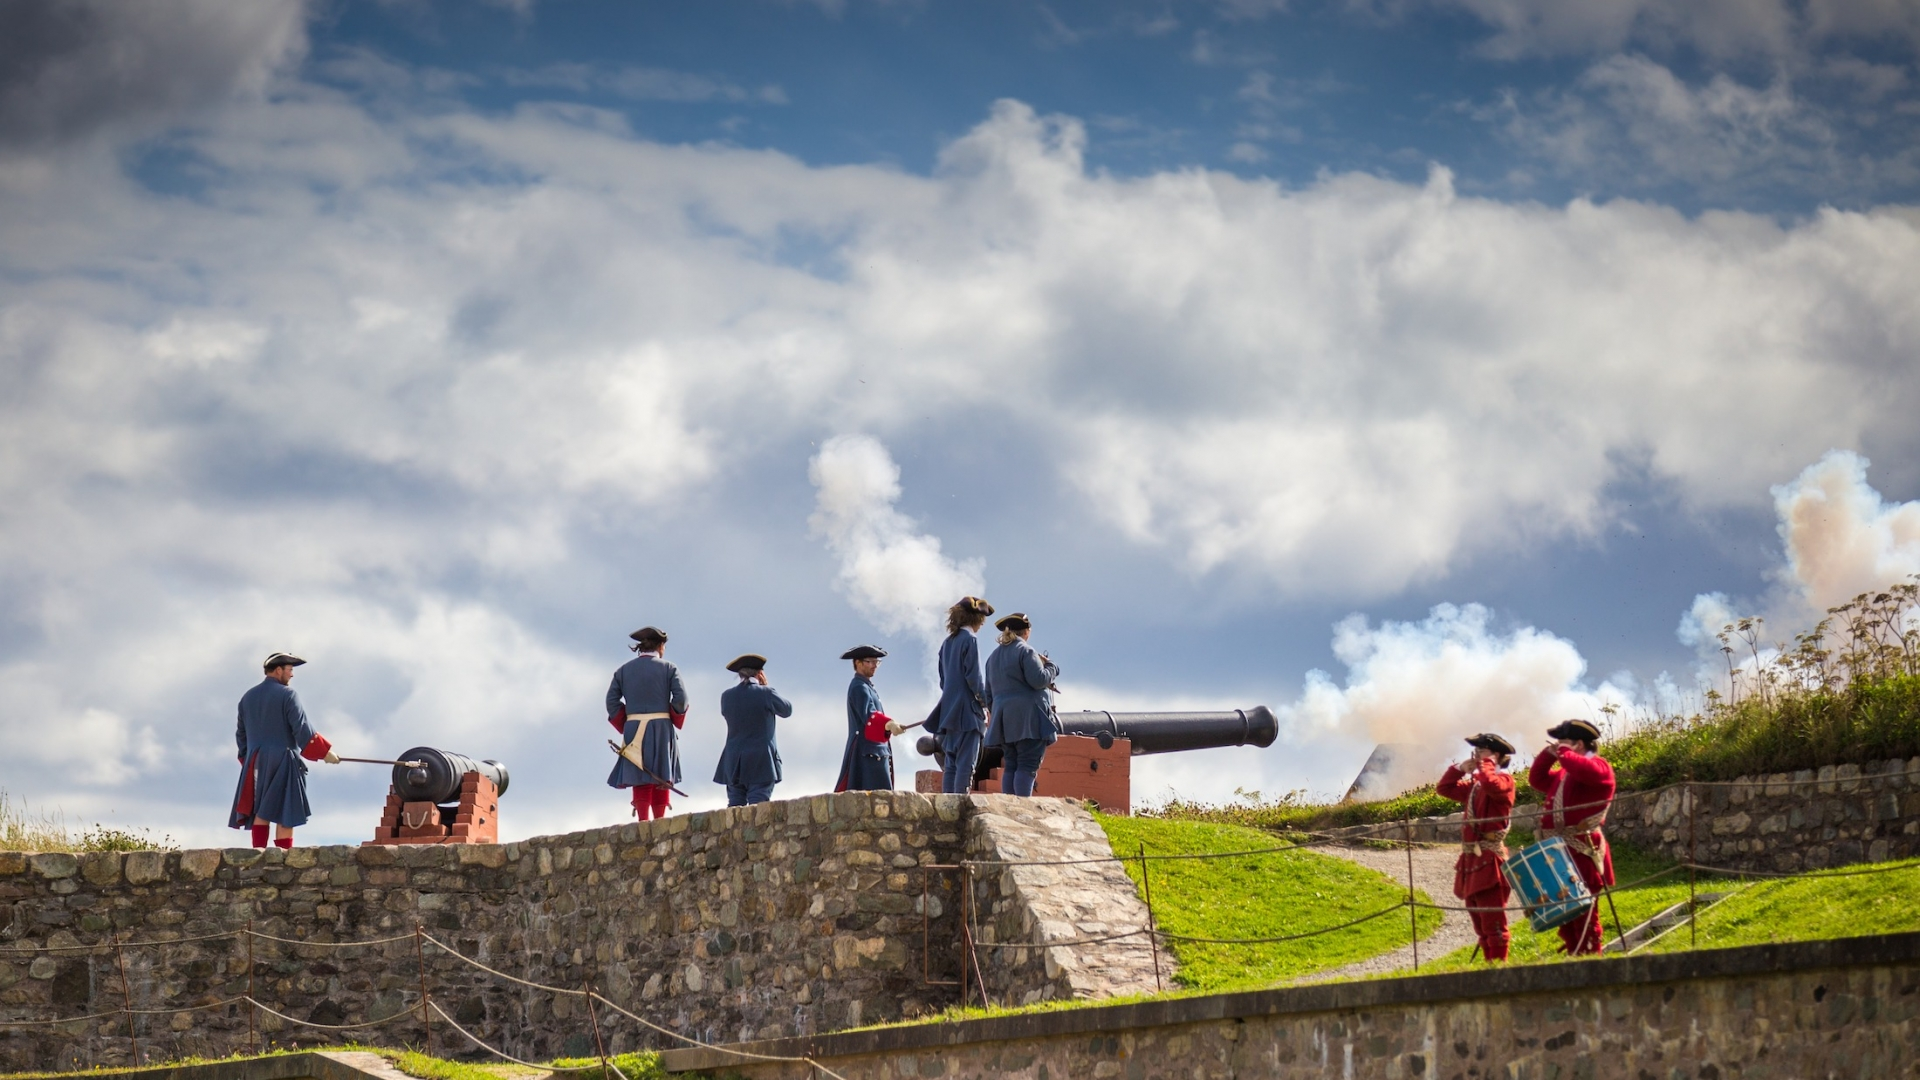 Fortress of Louisbourg 3